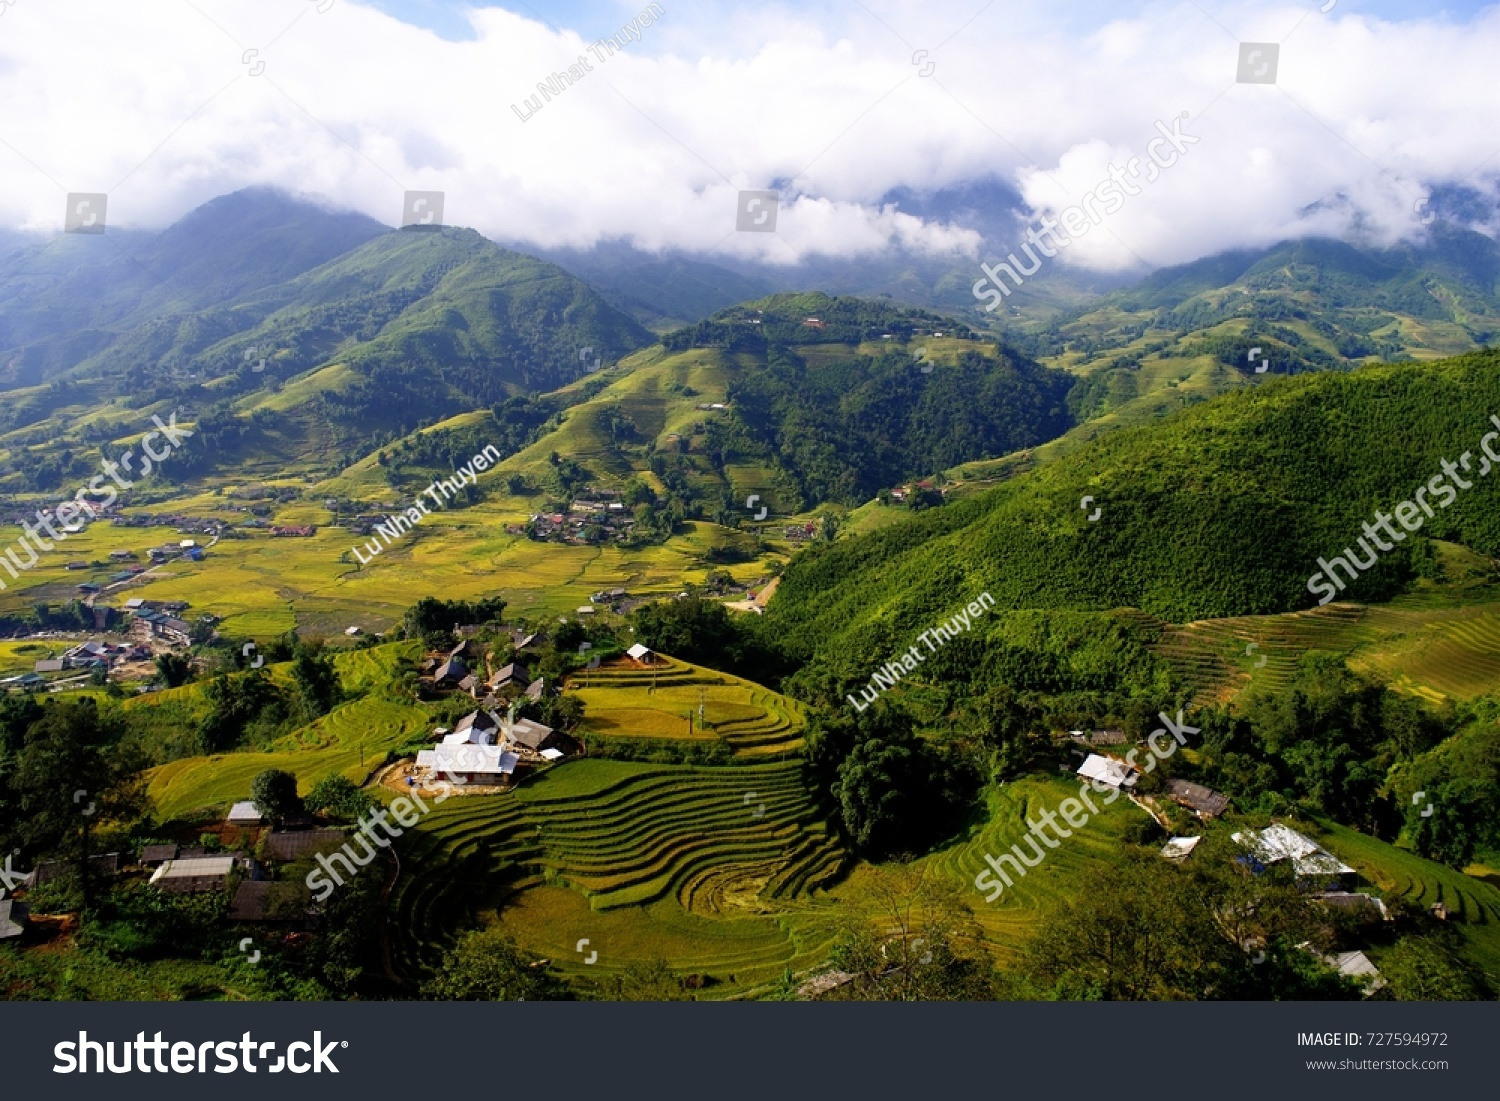 Nui Hoang Lien Nature Reserve The Northwest, Ta Van Village Beautiful Picture Leaning Stock Photo 727594972 ...